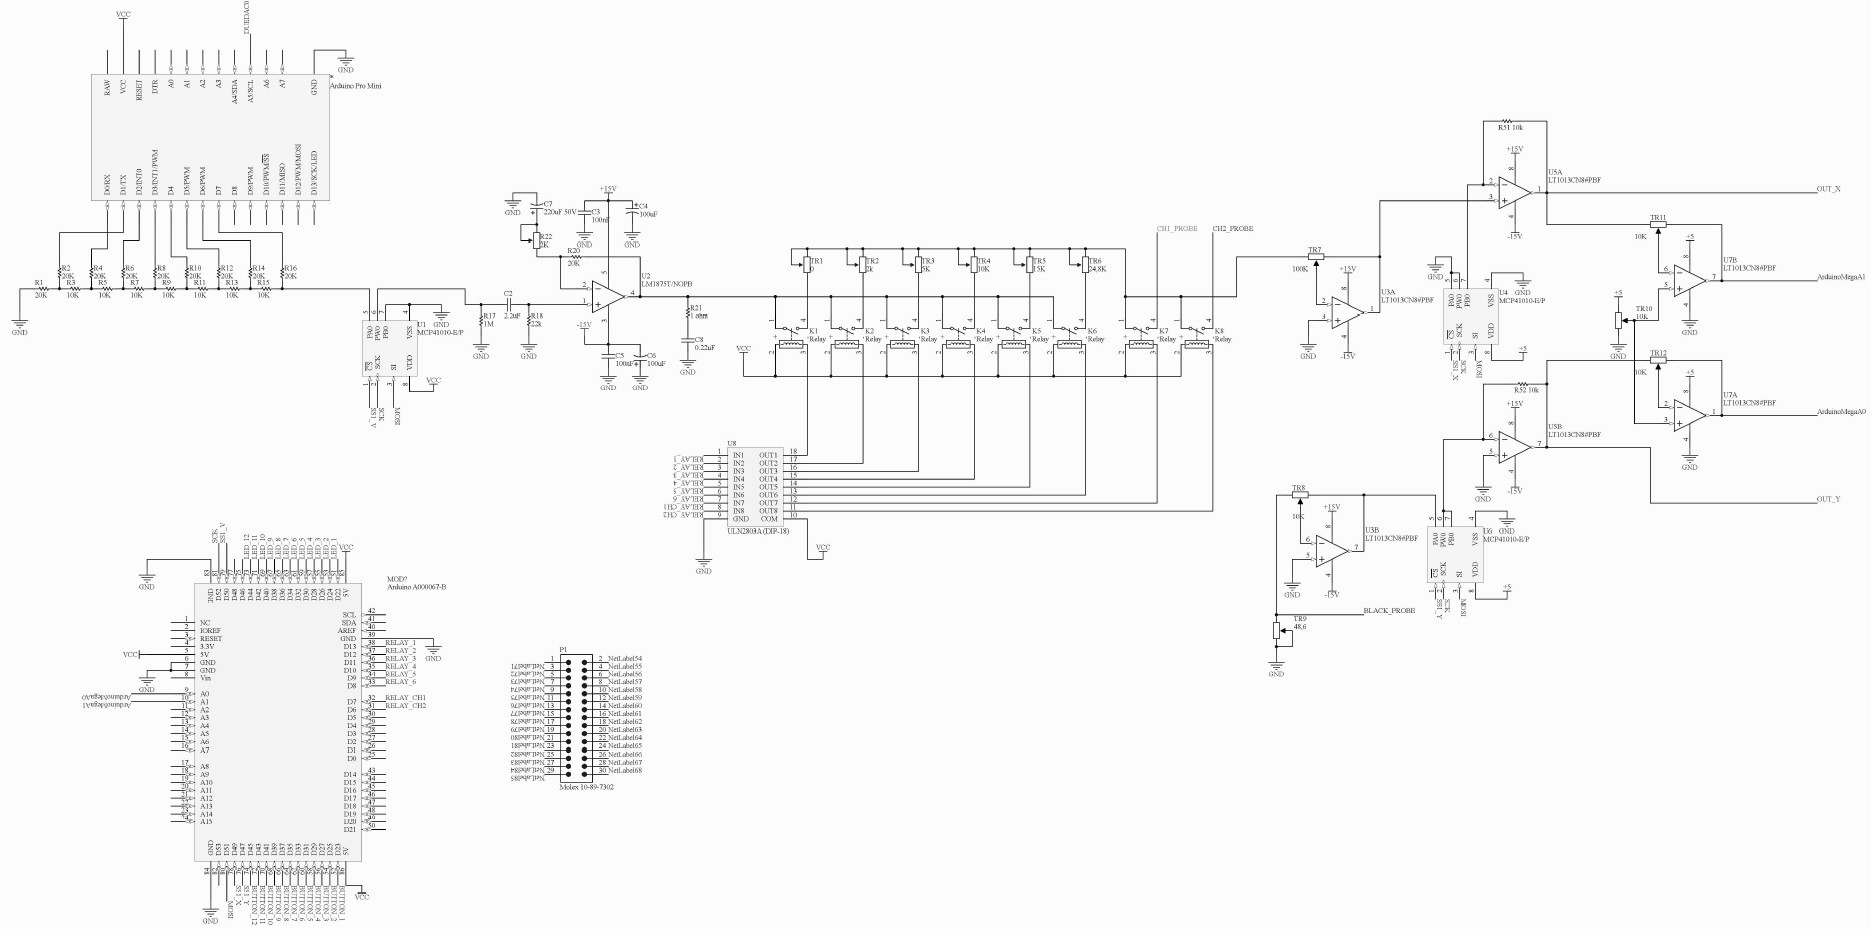 Microcontroller Based Curve Tracer X Y Recorder Block Diagram Version 3 Have 6 Voltage Ranges Resistance And Frequancy It Also Capable To Measure Two Channel Alternatly